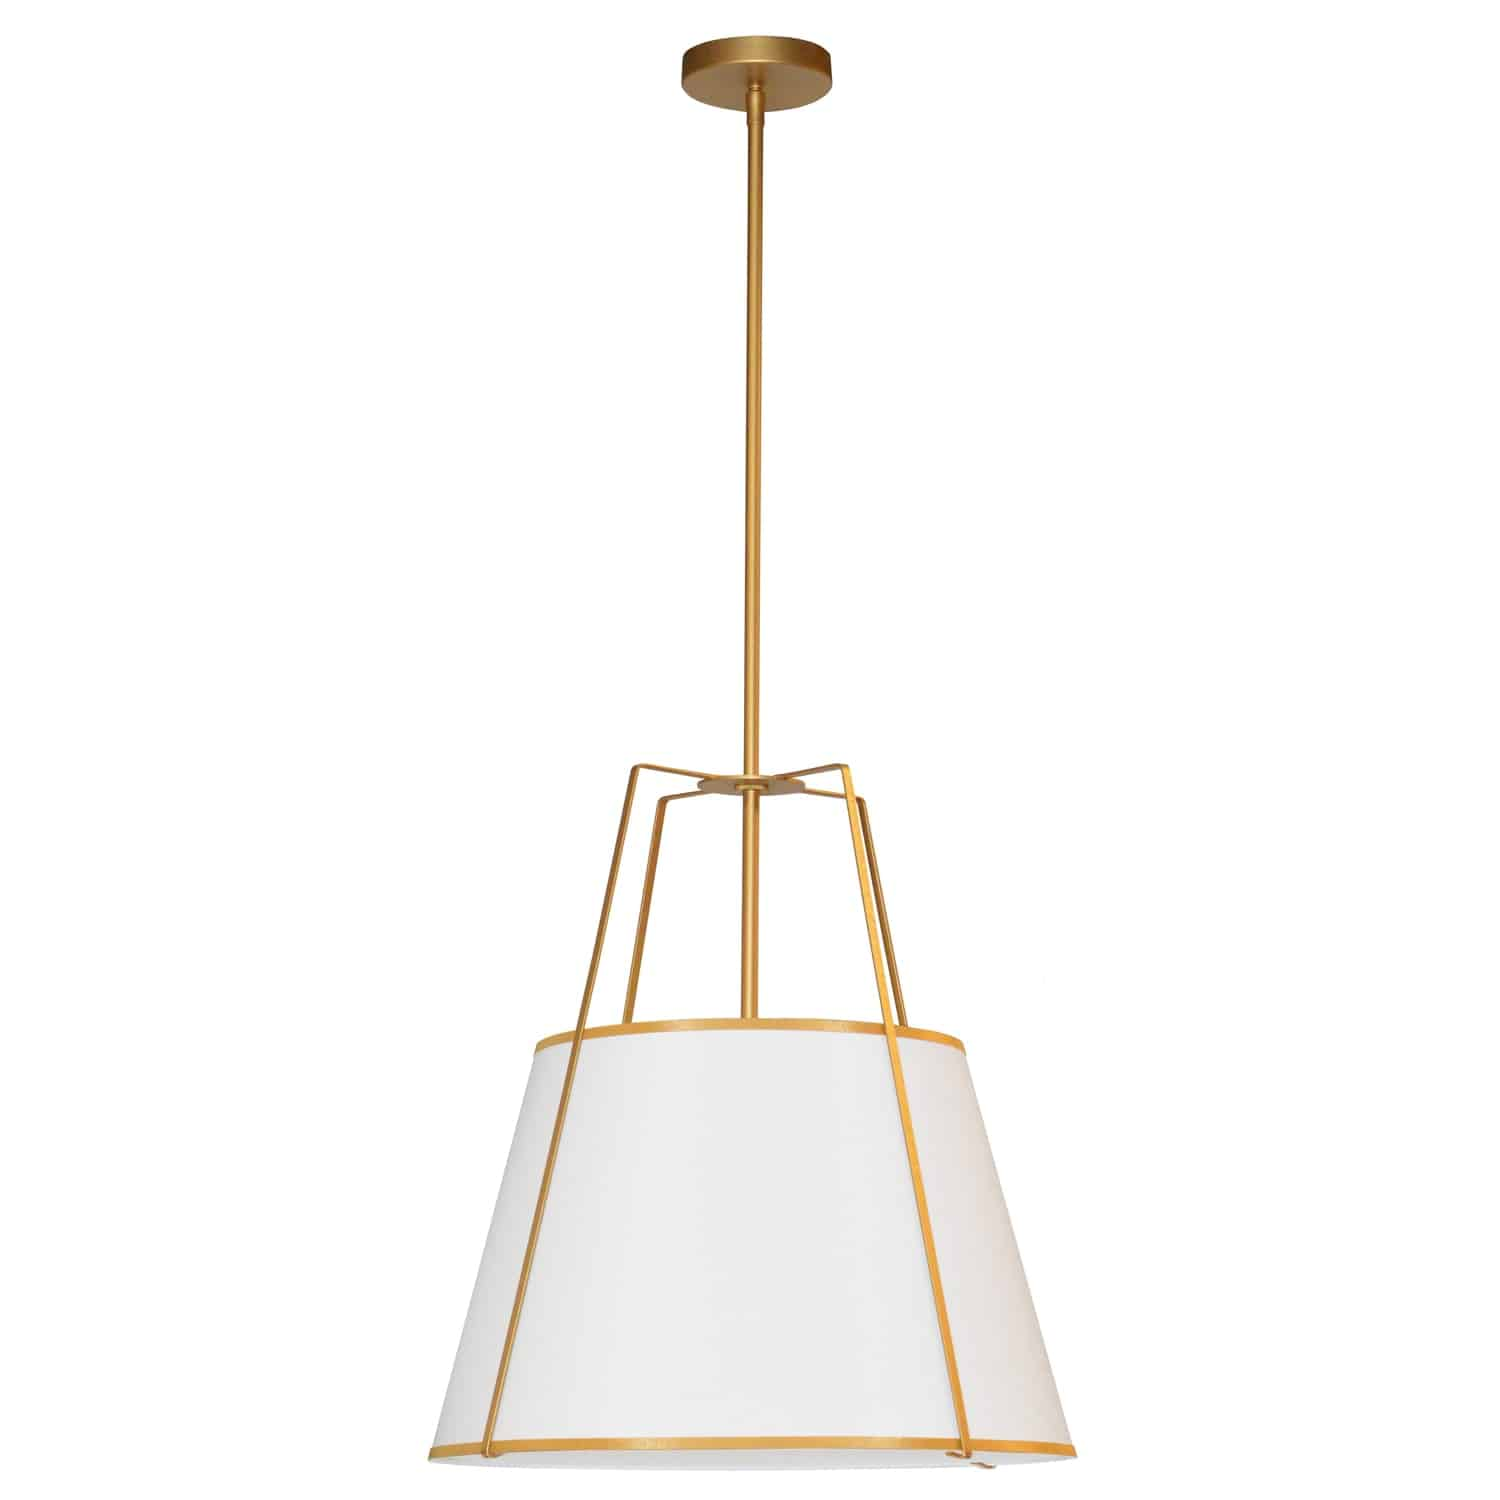 1 Light Trapezoid Pendant Gold frame and White Shade w/ 790 Diffuser